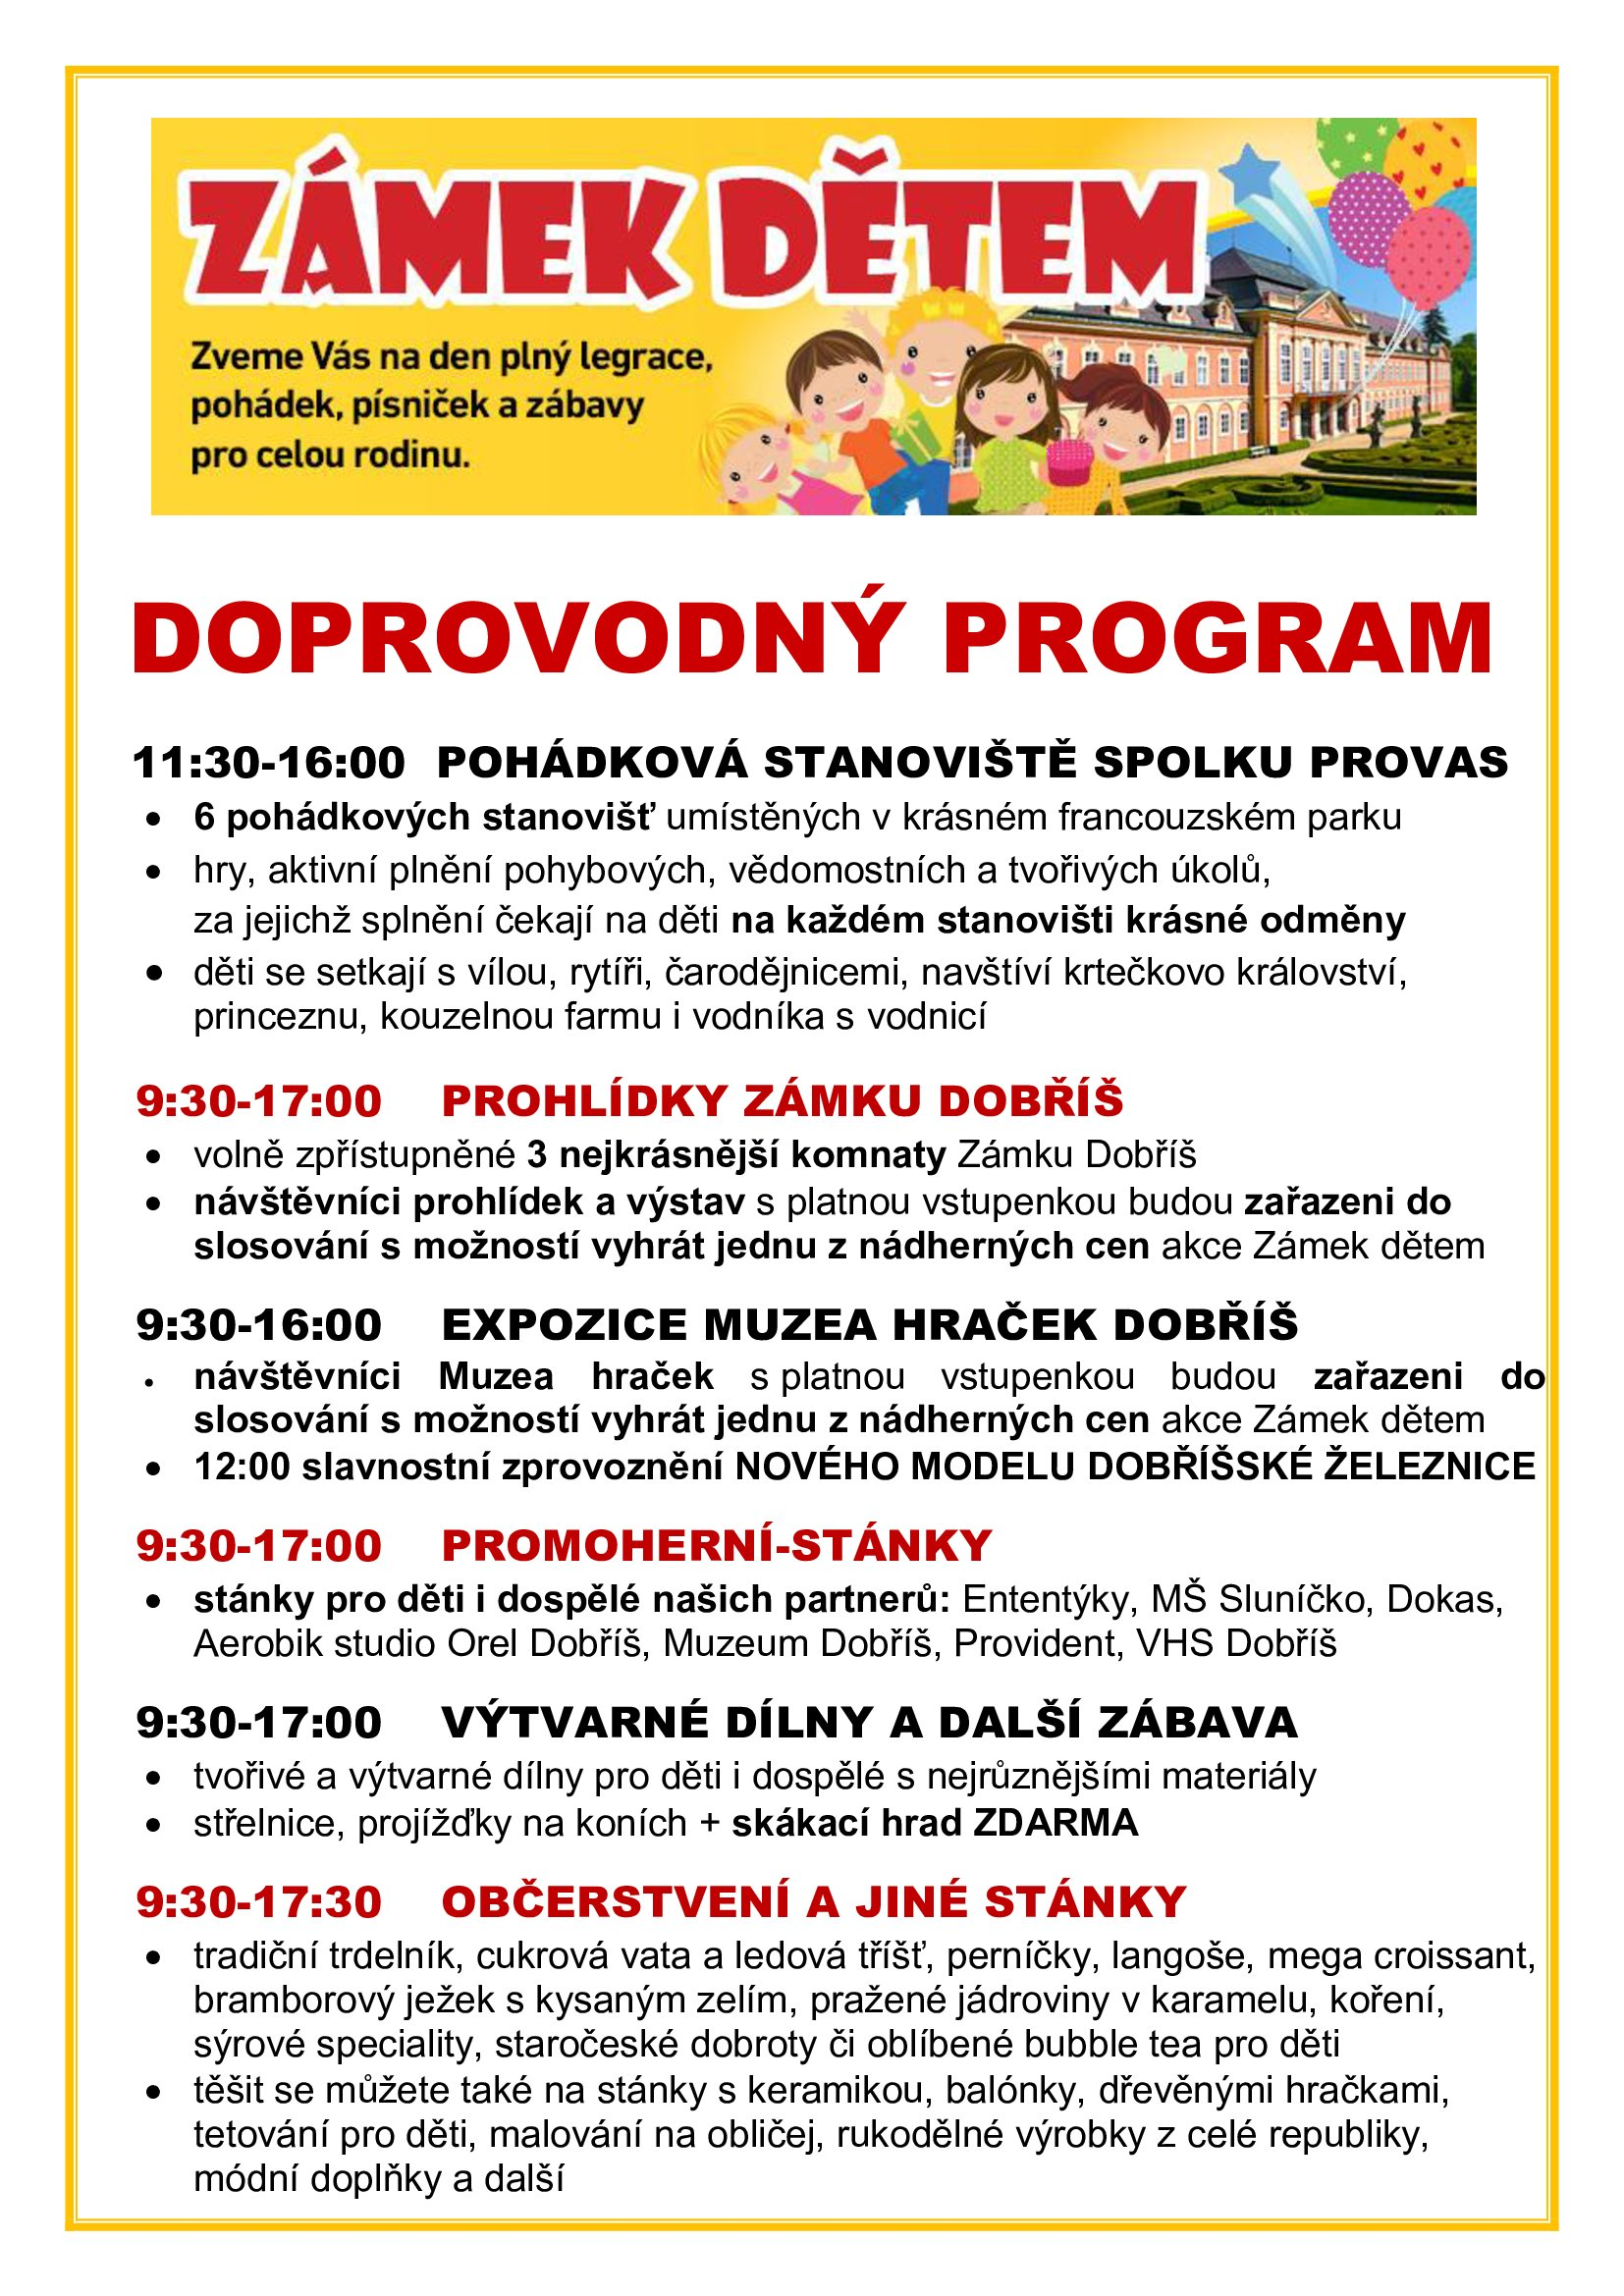 DOPROVODN PROGRAM 2017